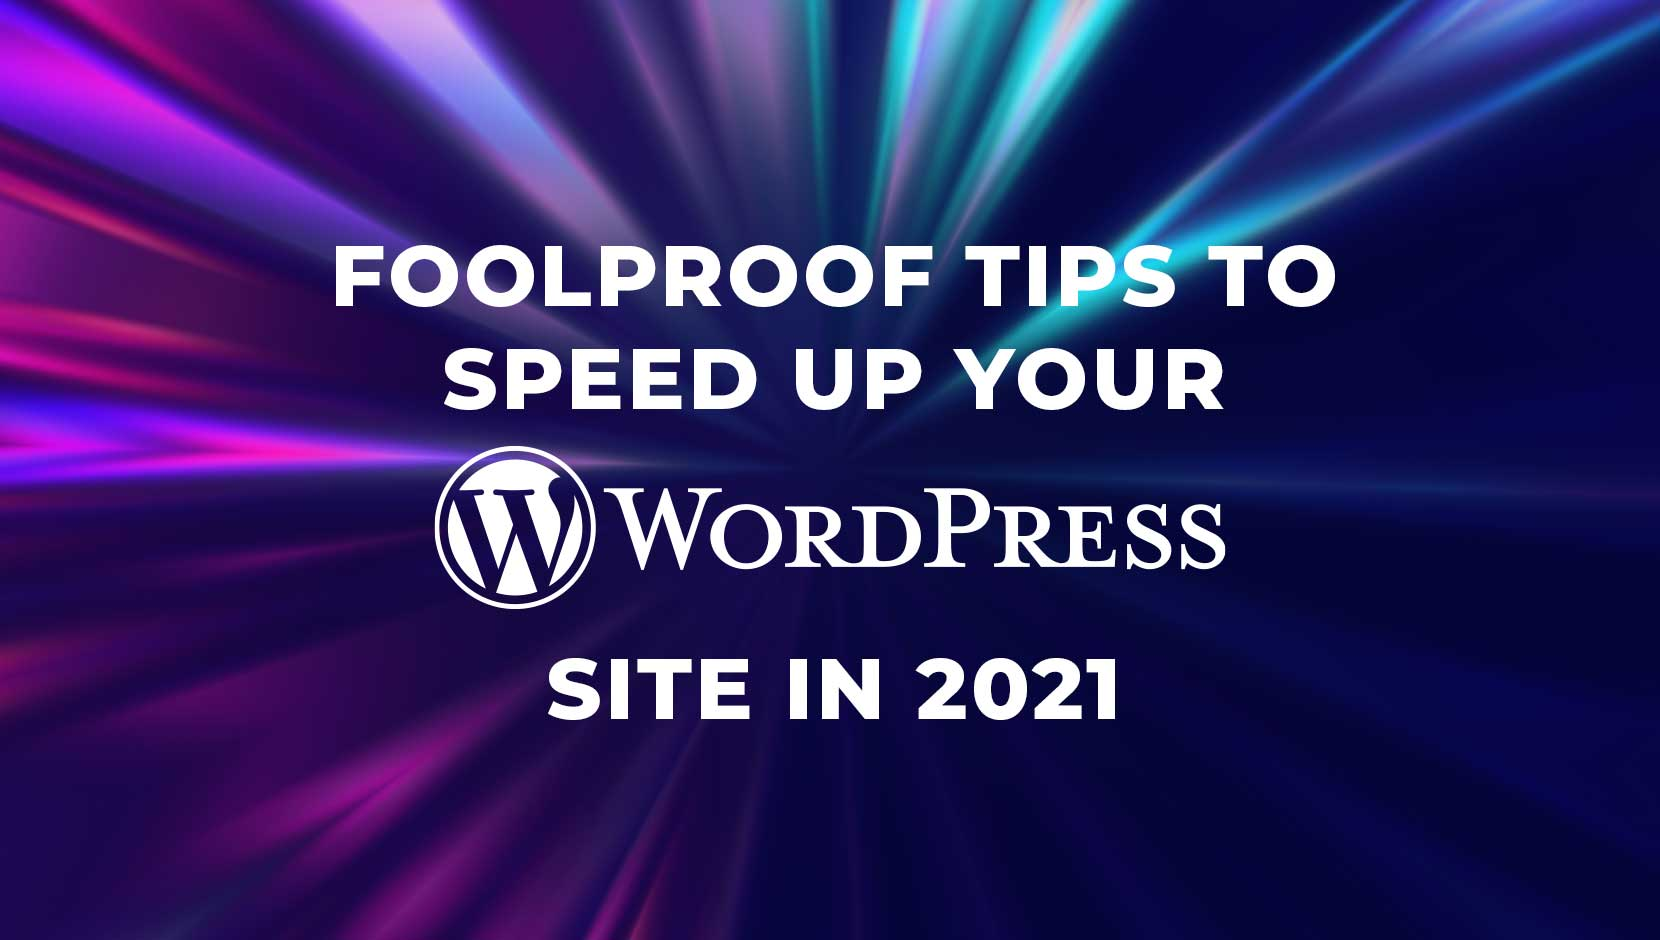 6 Fool-Proof Tips to Speed Up Your WordPress Site in 2021